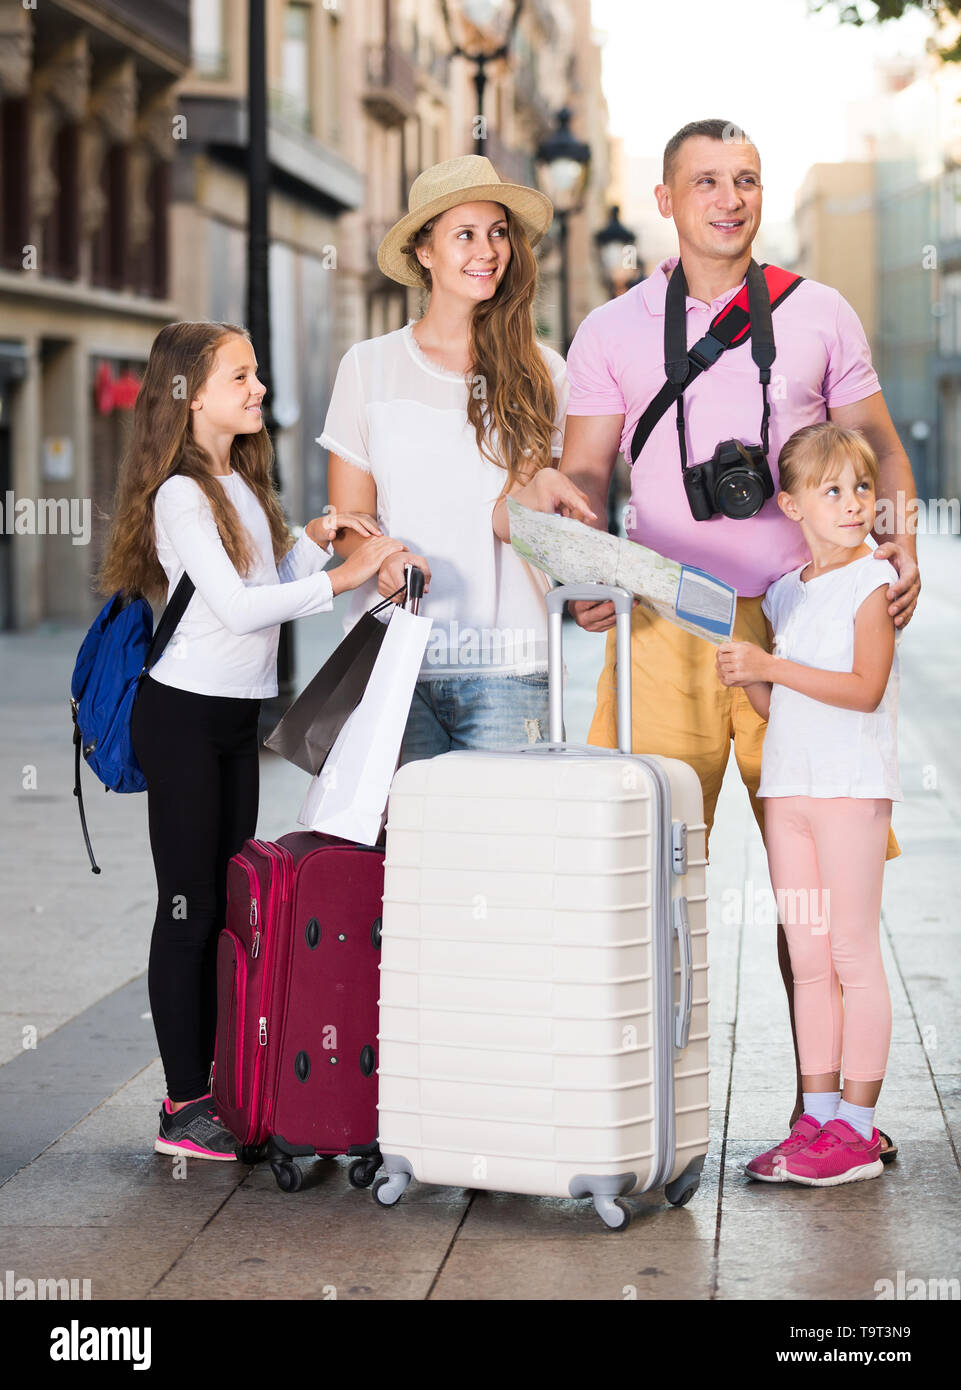 positive british  parents with two kids traveling together searching location on paper map - Stock Image